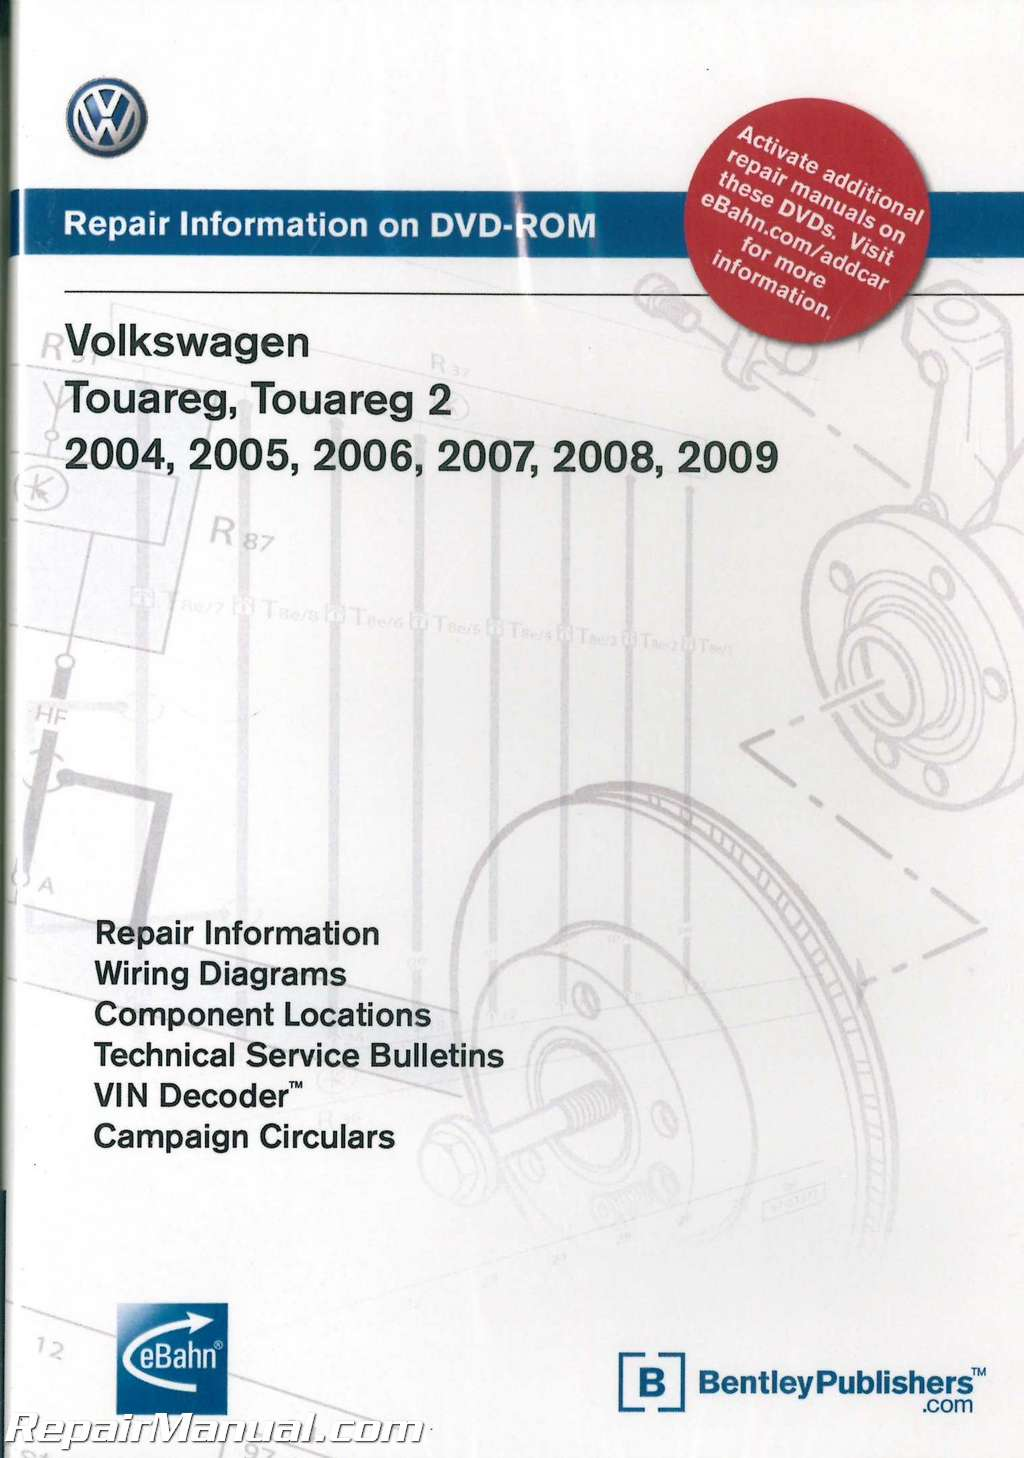 Volkswagen Touareg 2004-2009 Repair Manual On DVD-ROM